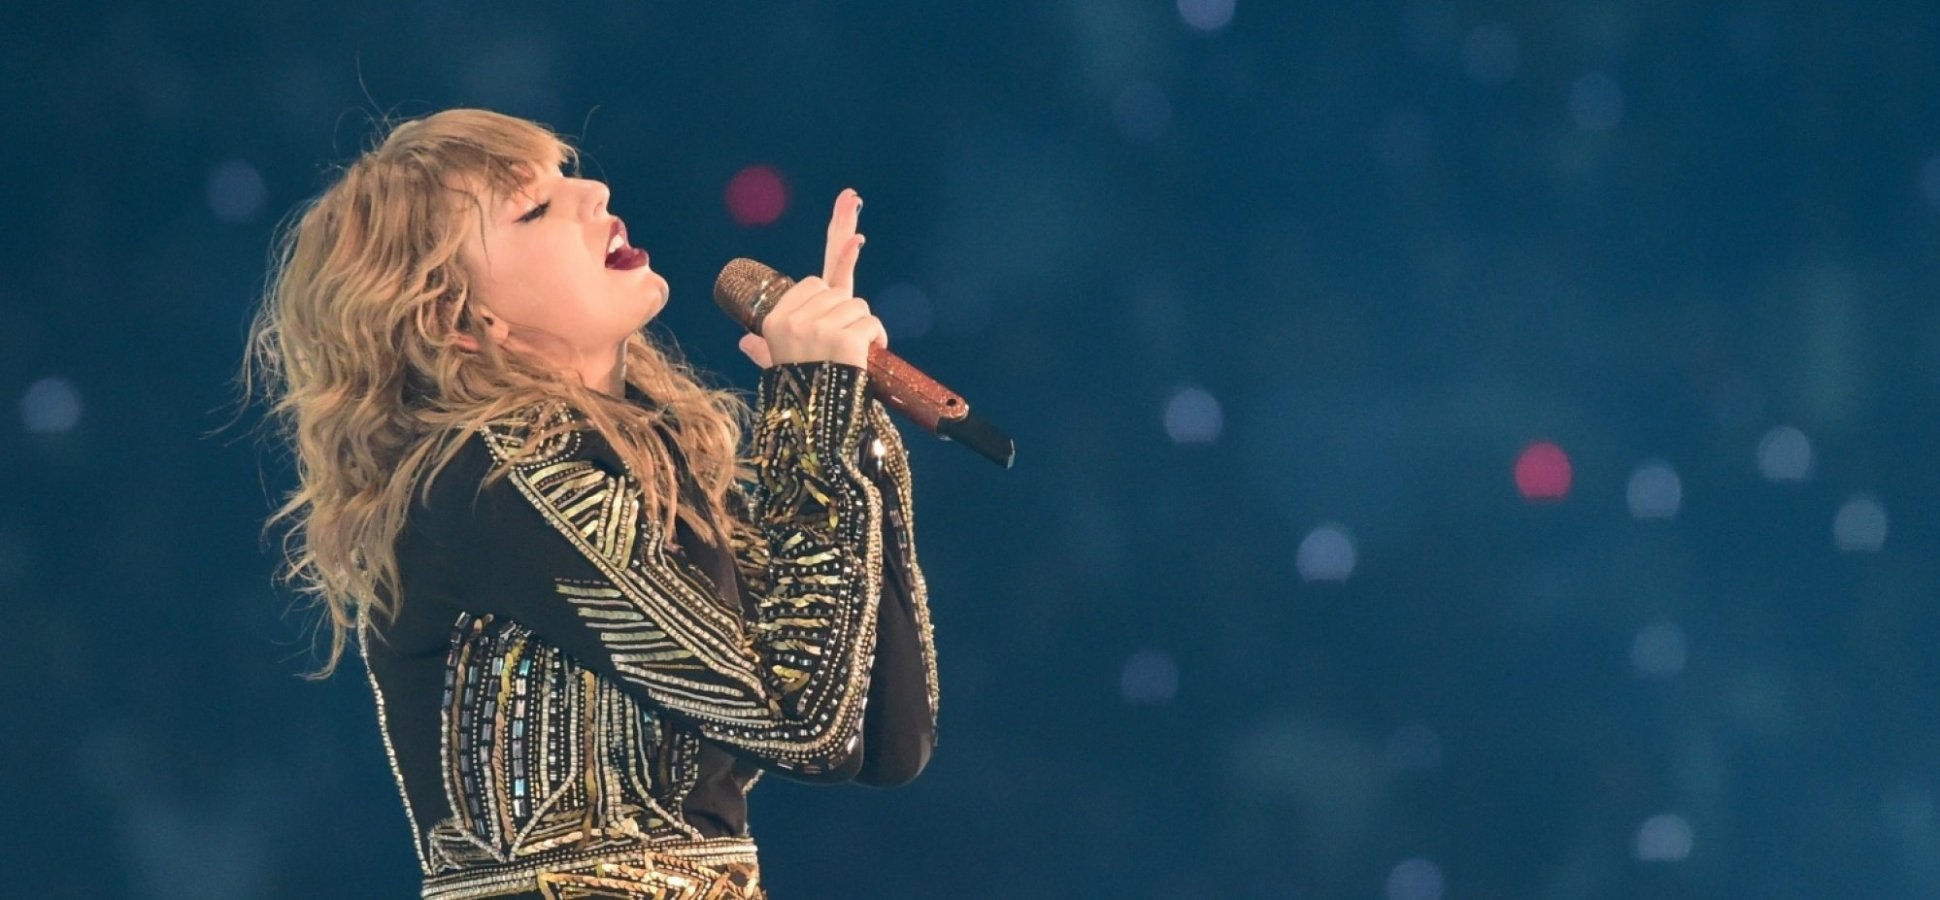 With an Unheard of Contract Clause, Taylor Swift Does Well by Helping Her Competitors